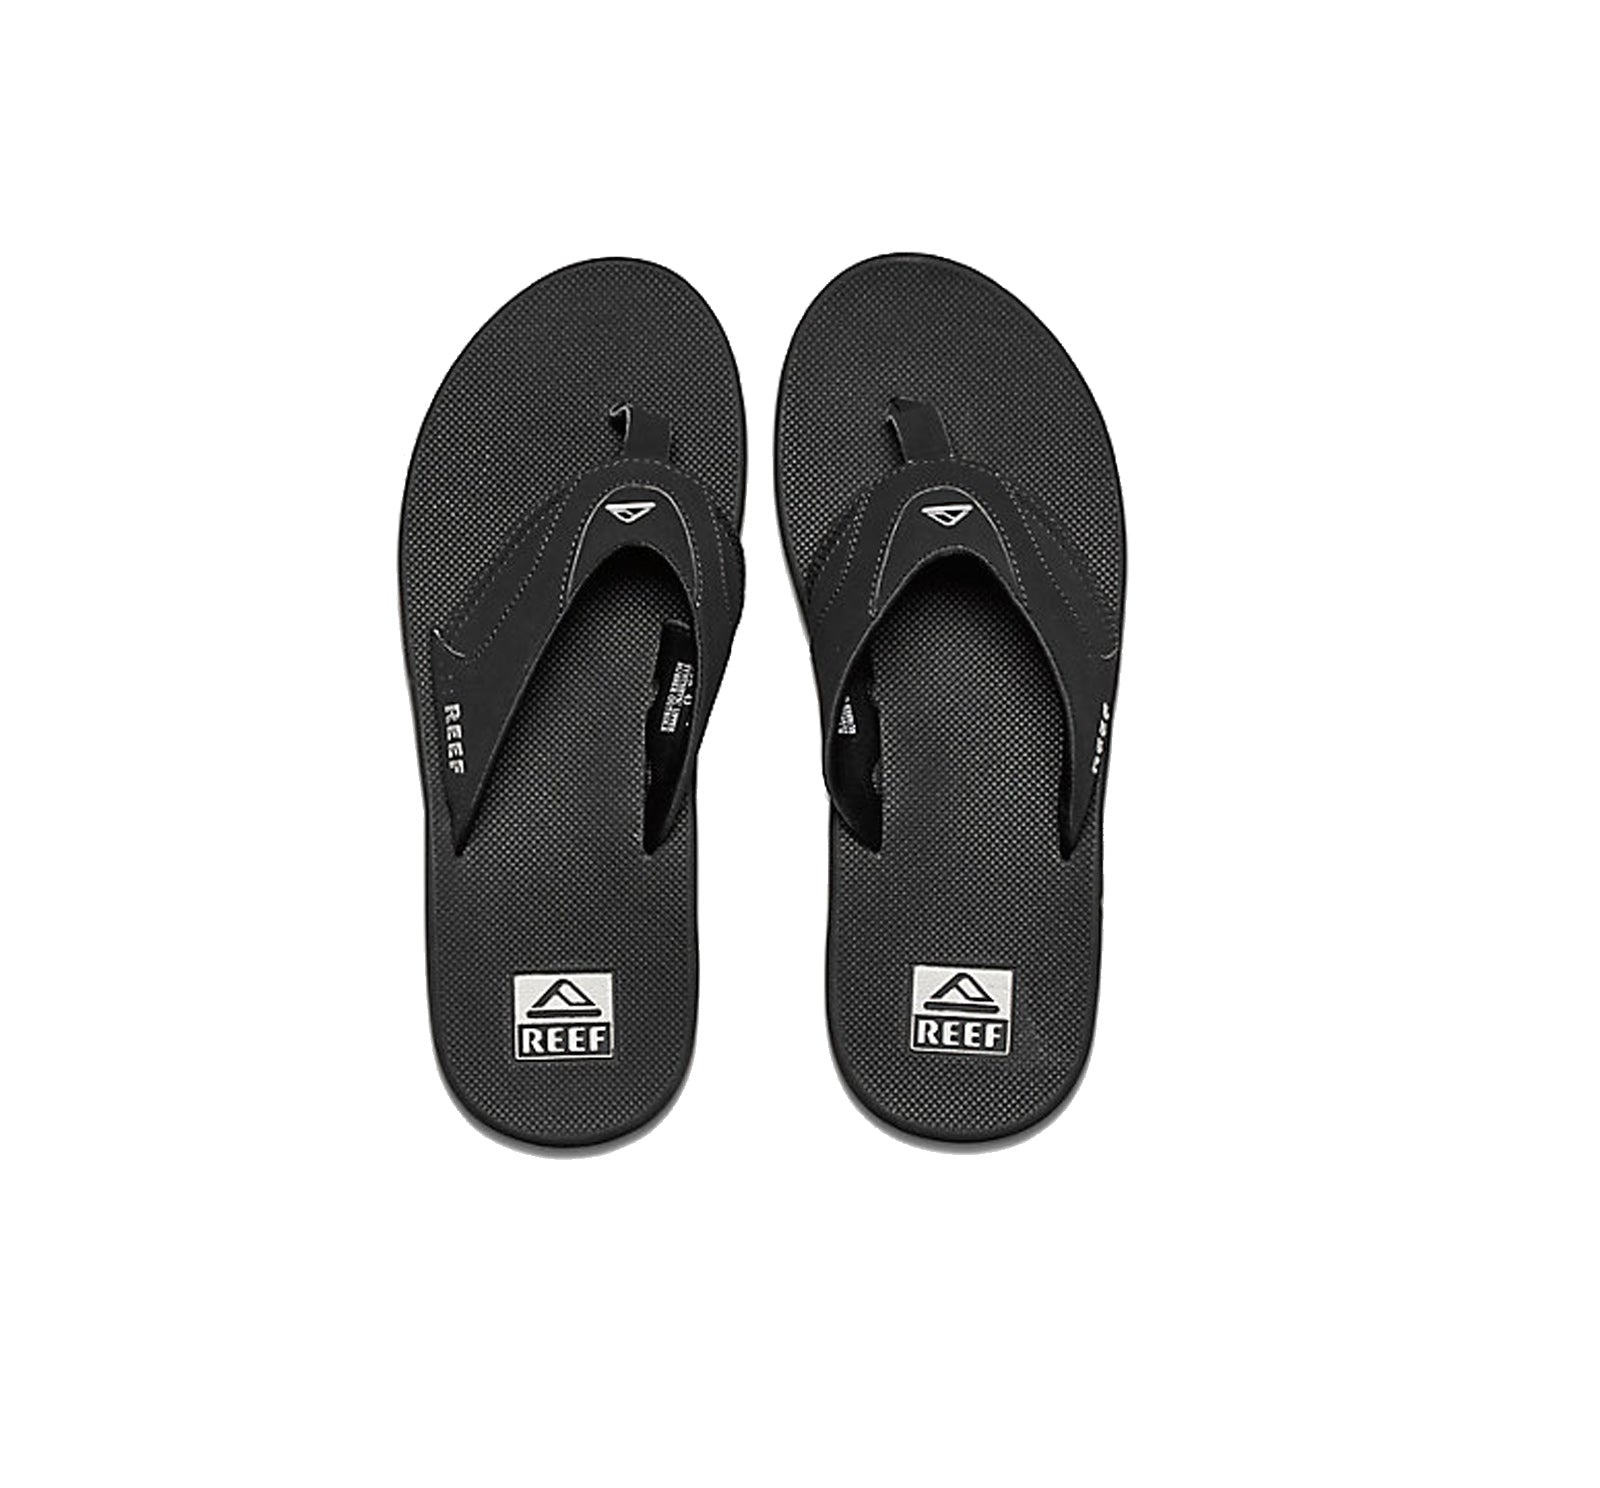 Reef Fanning Men's Sandals - Black/Silver